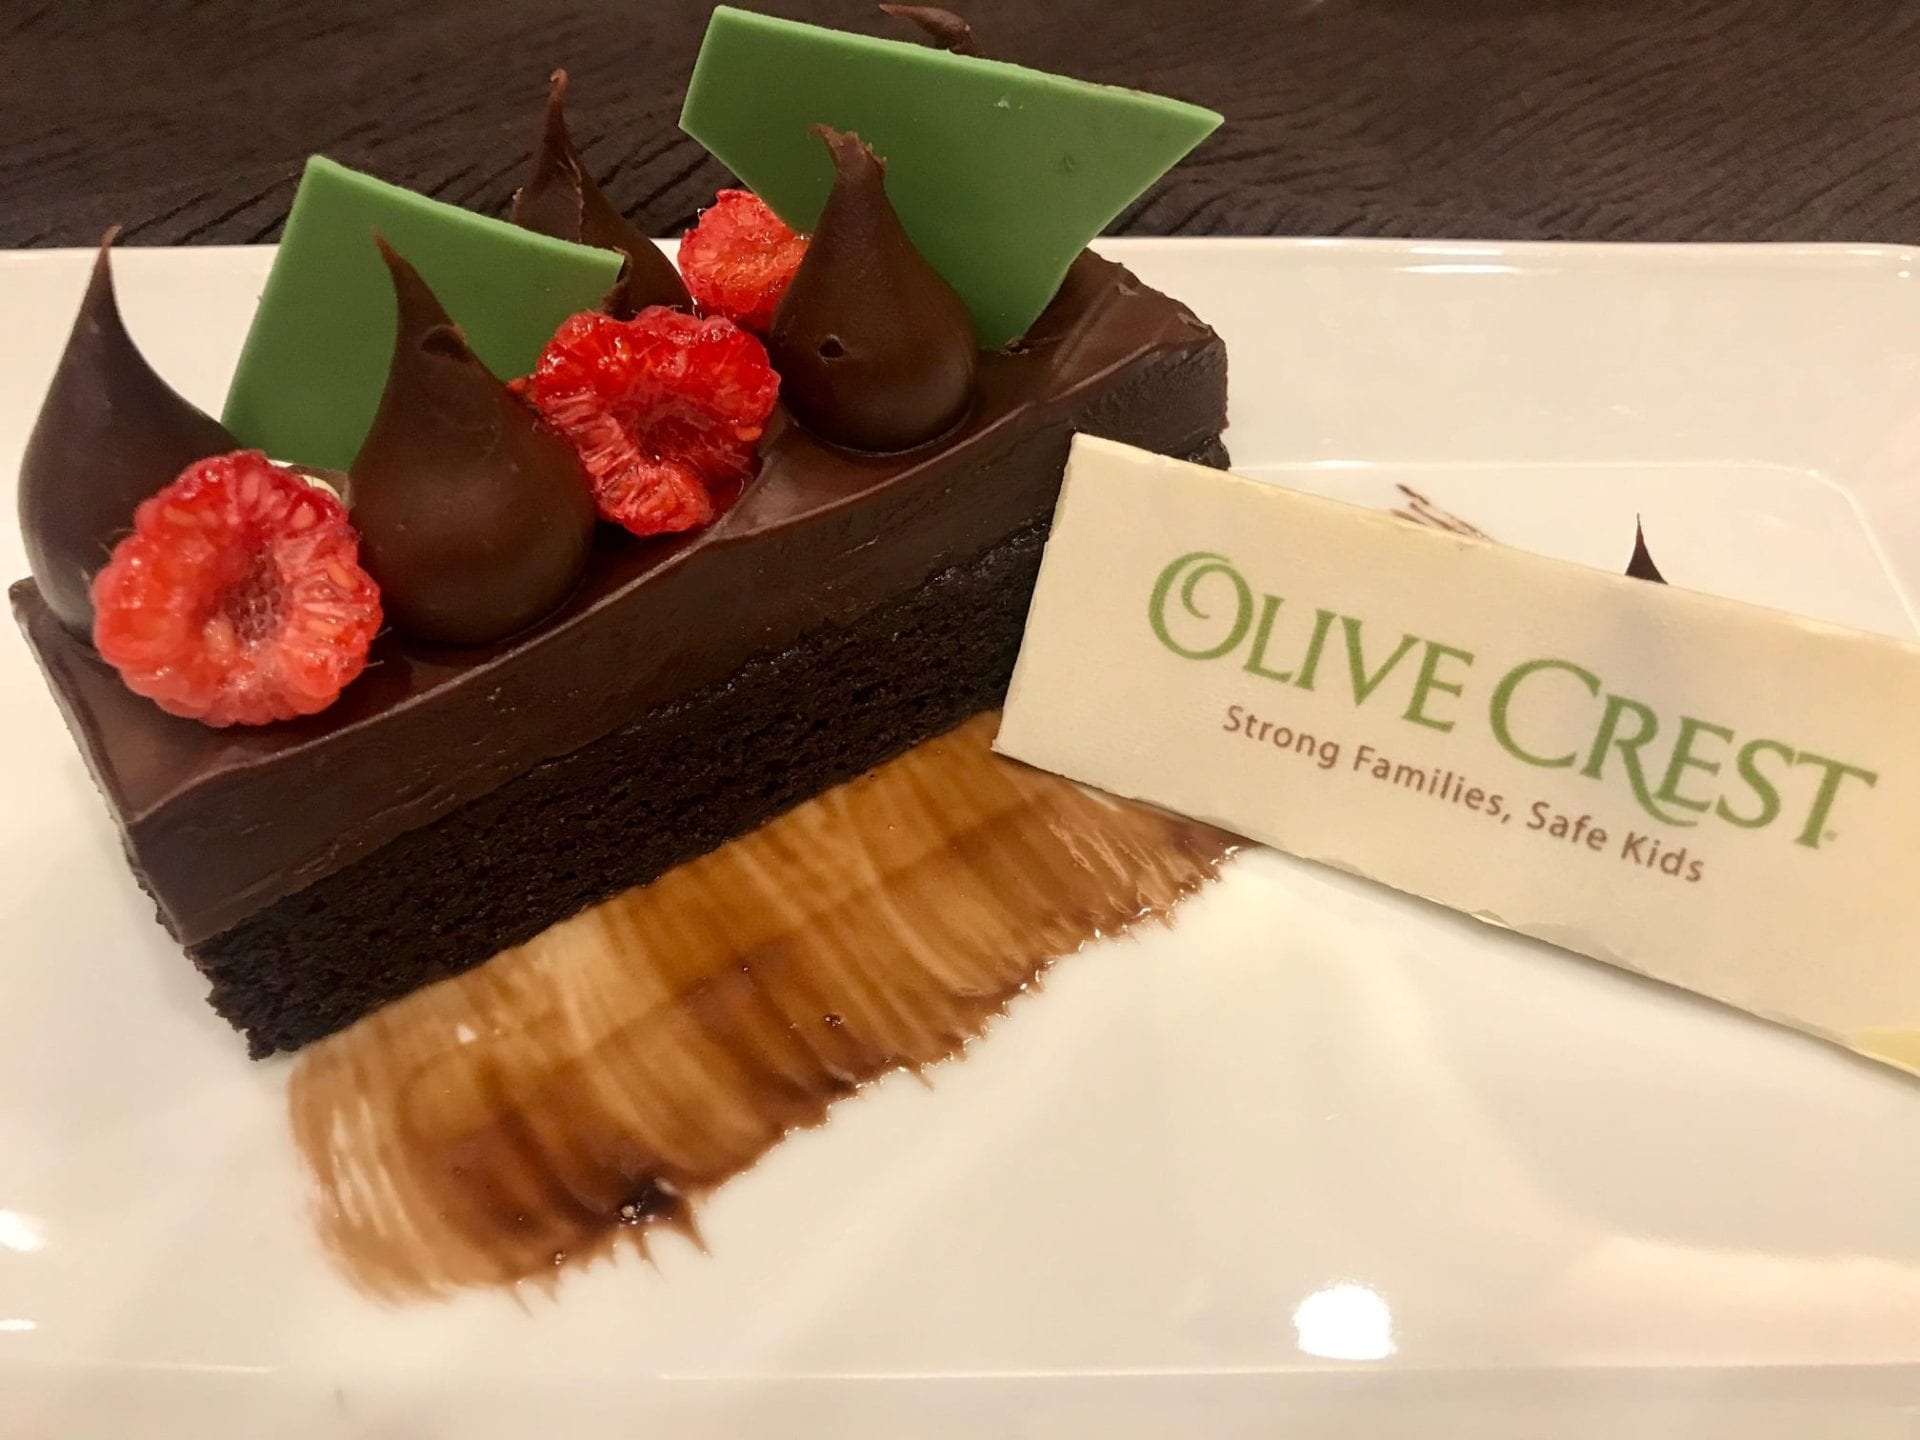 Delicious looking desert at Olive Crest Nevada event